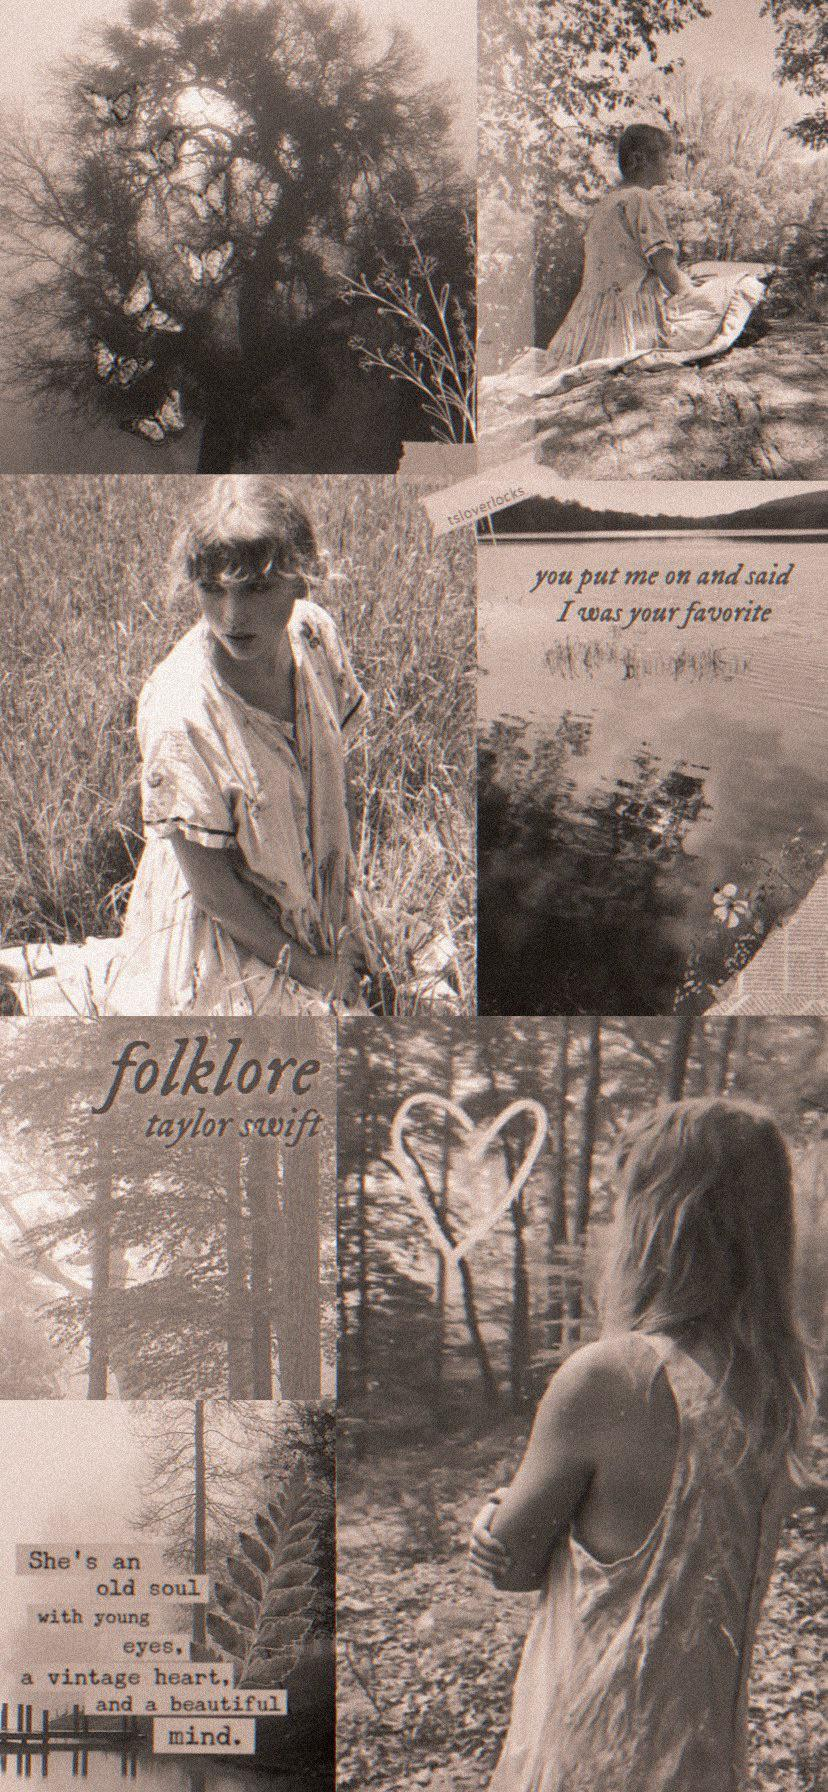 Download Taylor Swift Folklore Hd Wallpapers